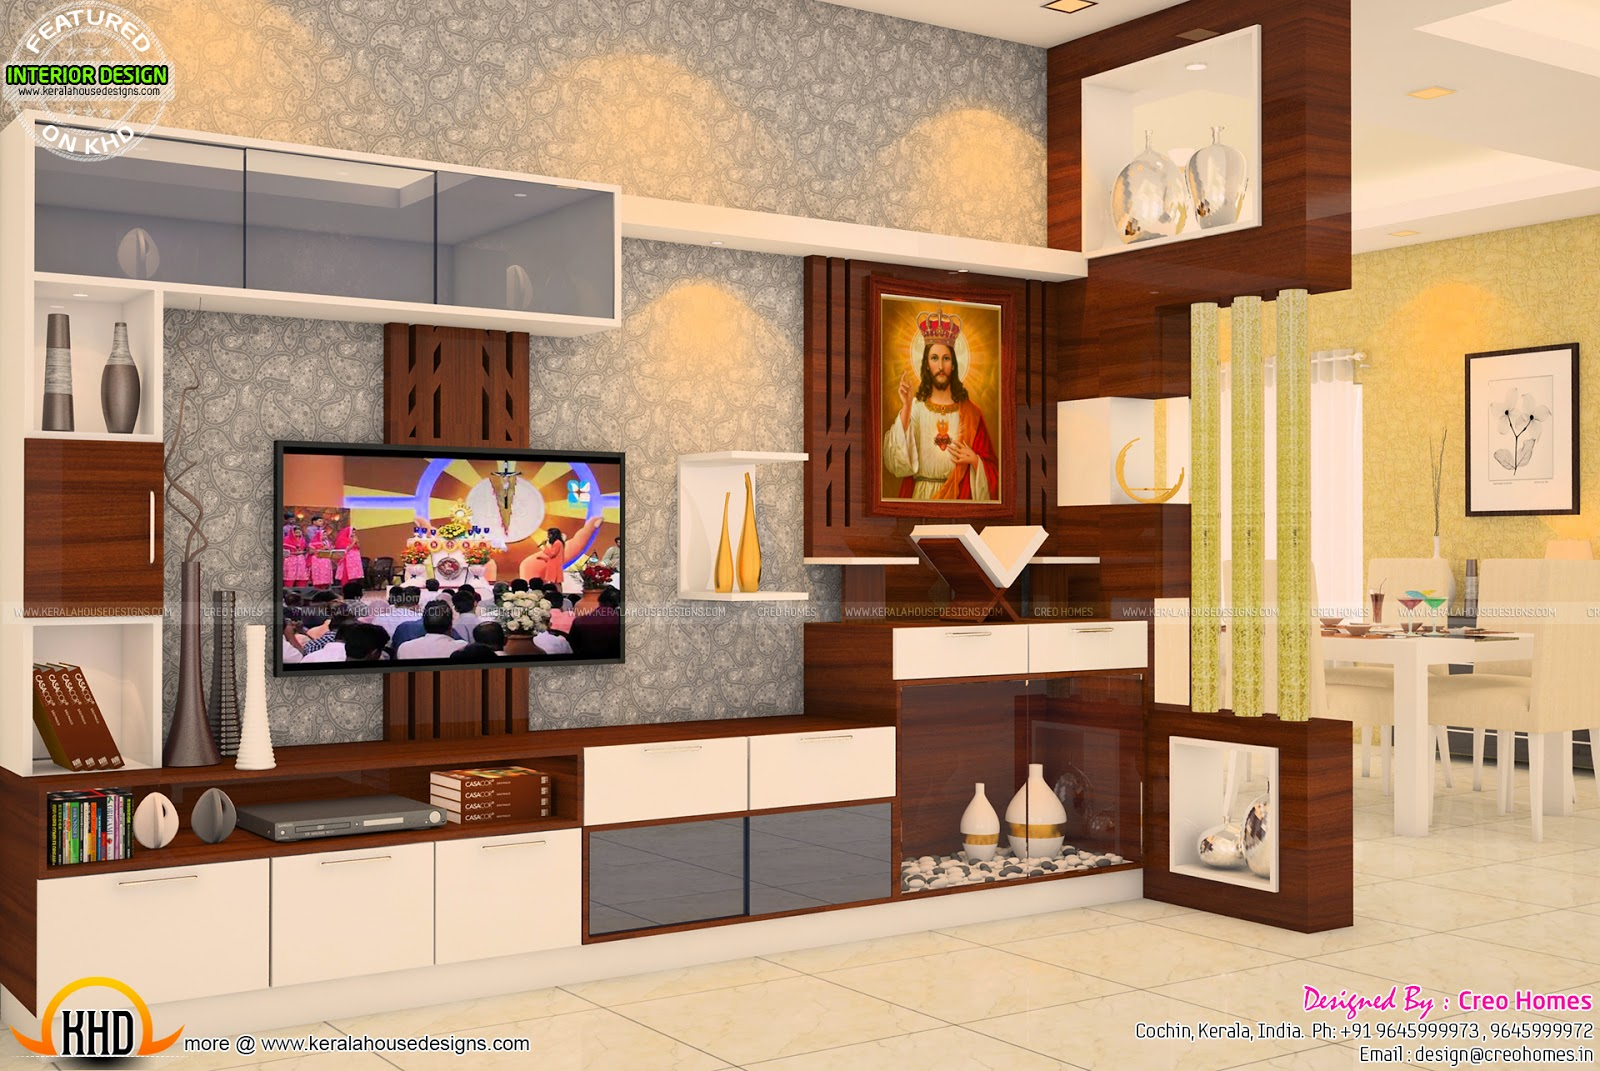 Living Prayer Kitchen Interiors Kerala Home Design And